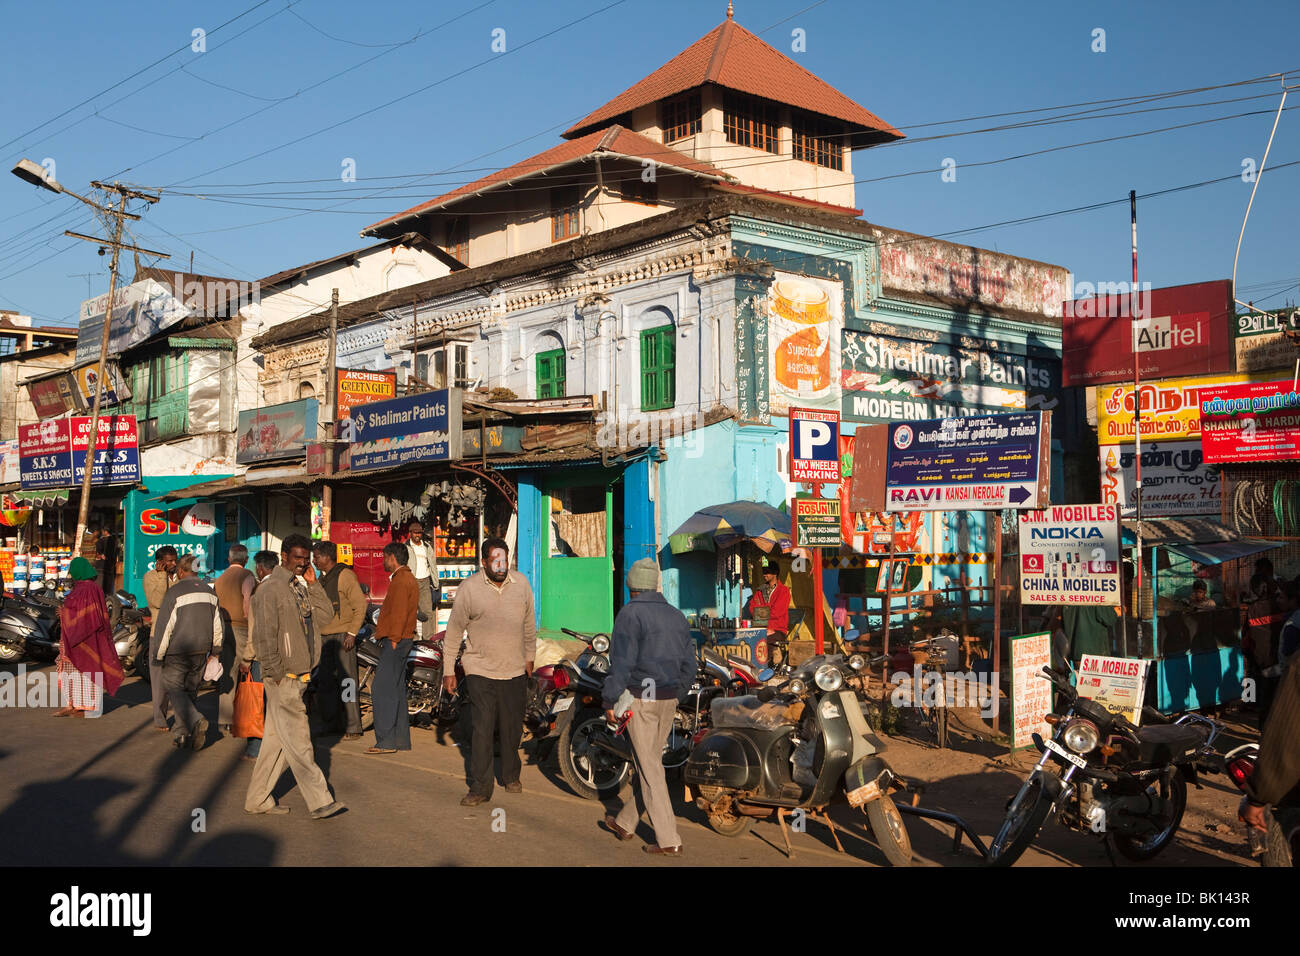 India, Tamil Nadu, Udhagamandalam (Ooty), Temple Lower Bazaar Road small businesses in old colonial building - Stock Image